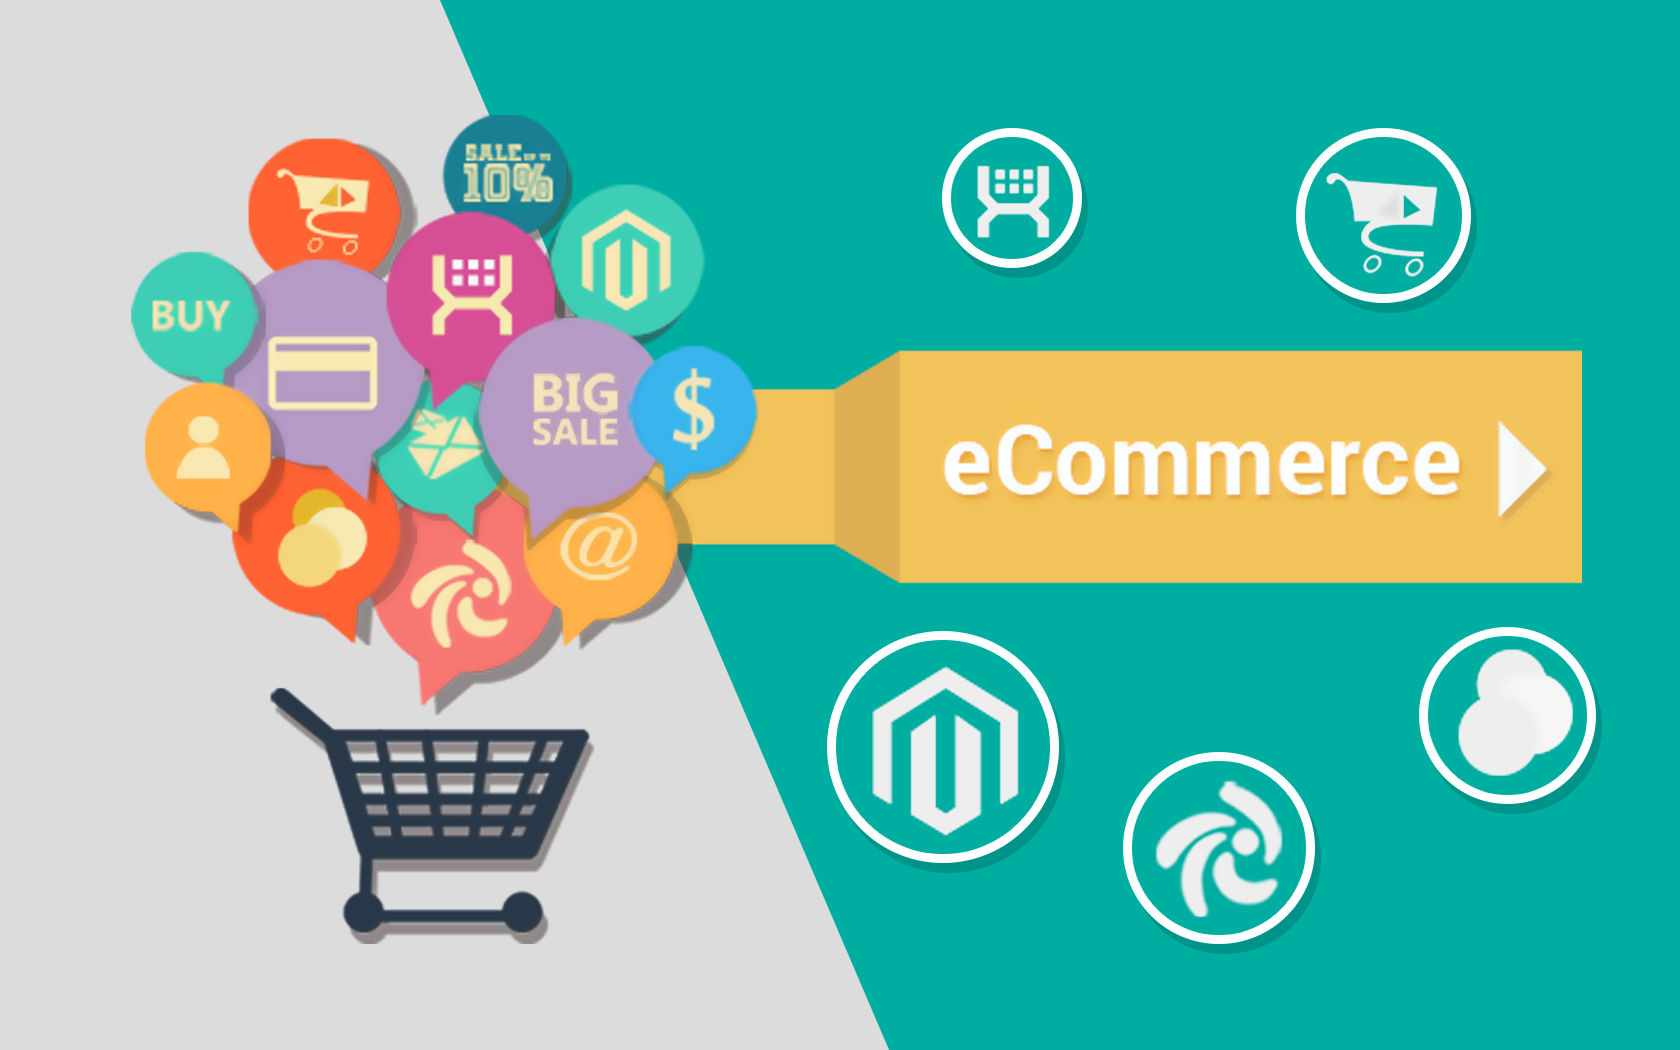 I will create a wordpress ecommerce website using woocommerce